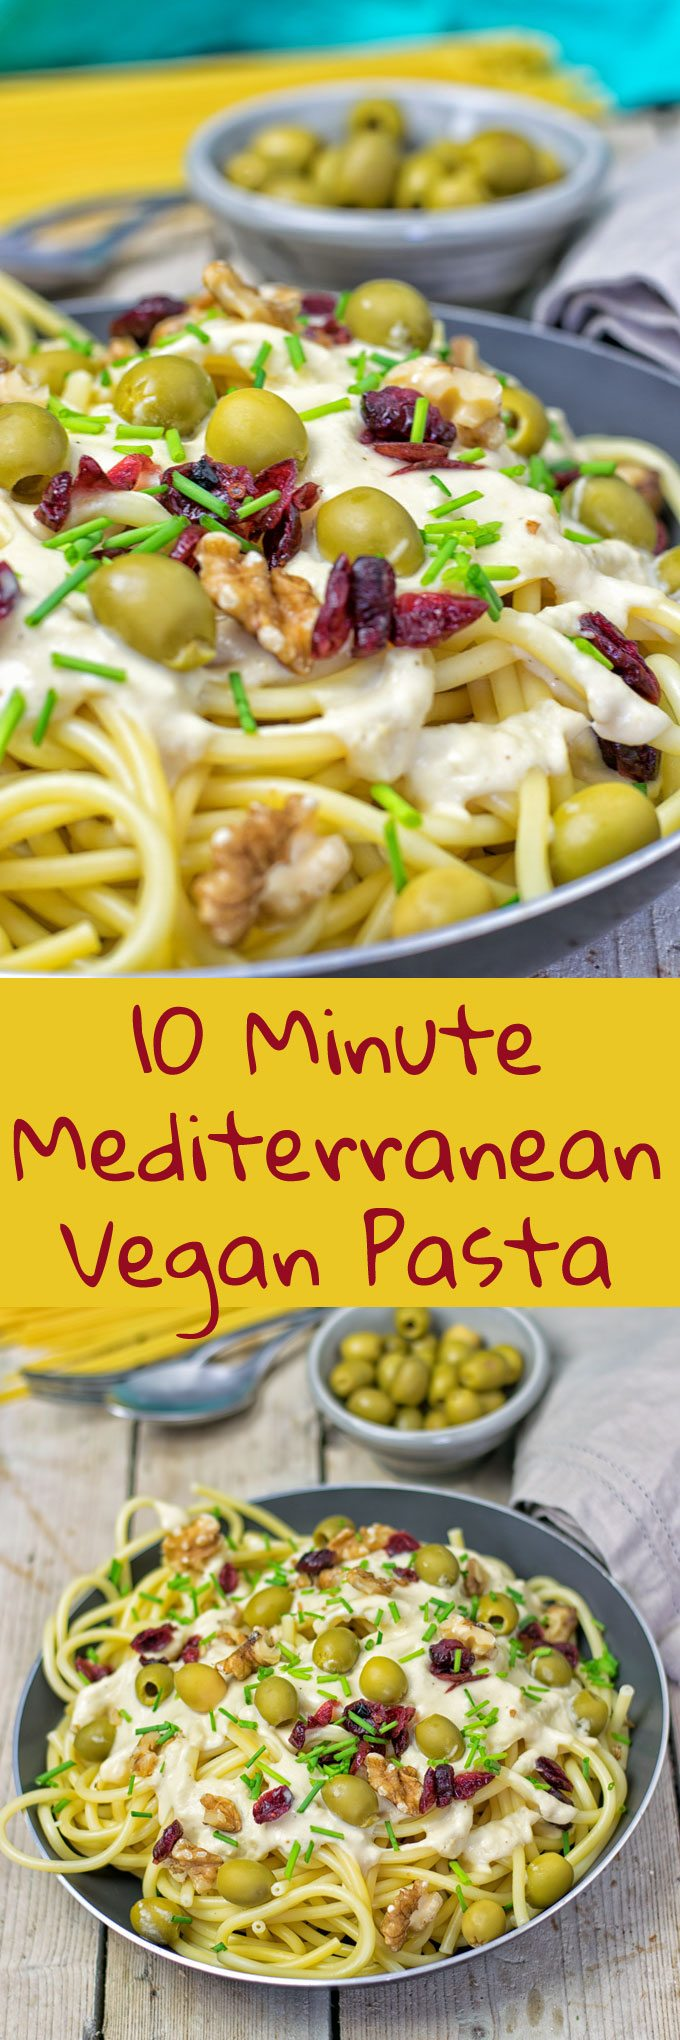 Collage of two pictures of the 10 Minute Mediterranean Vegan Pasta with recipe title text.